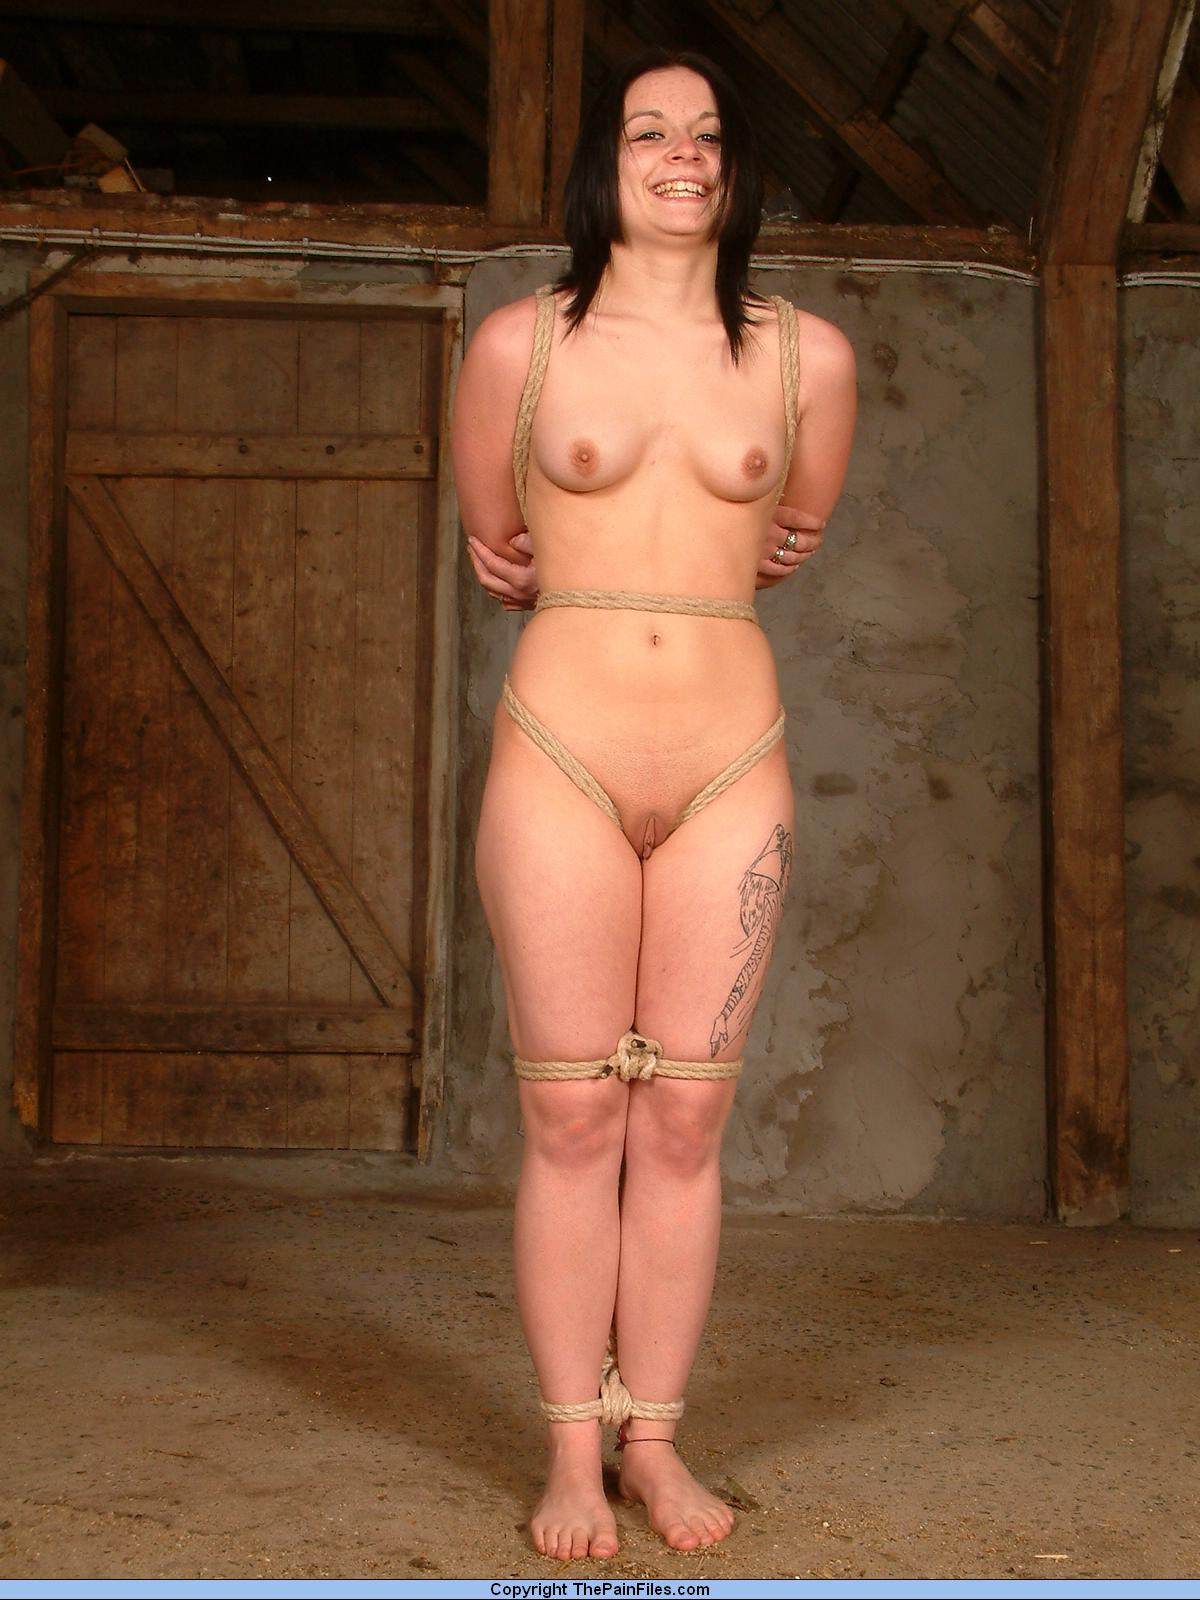 bdsm waterbondage nudisten wg